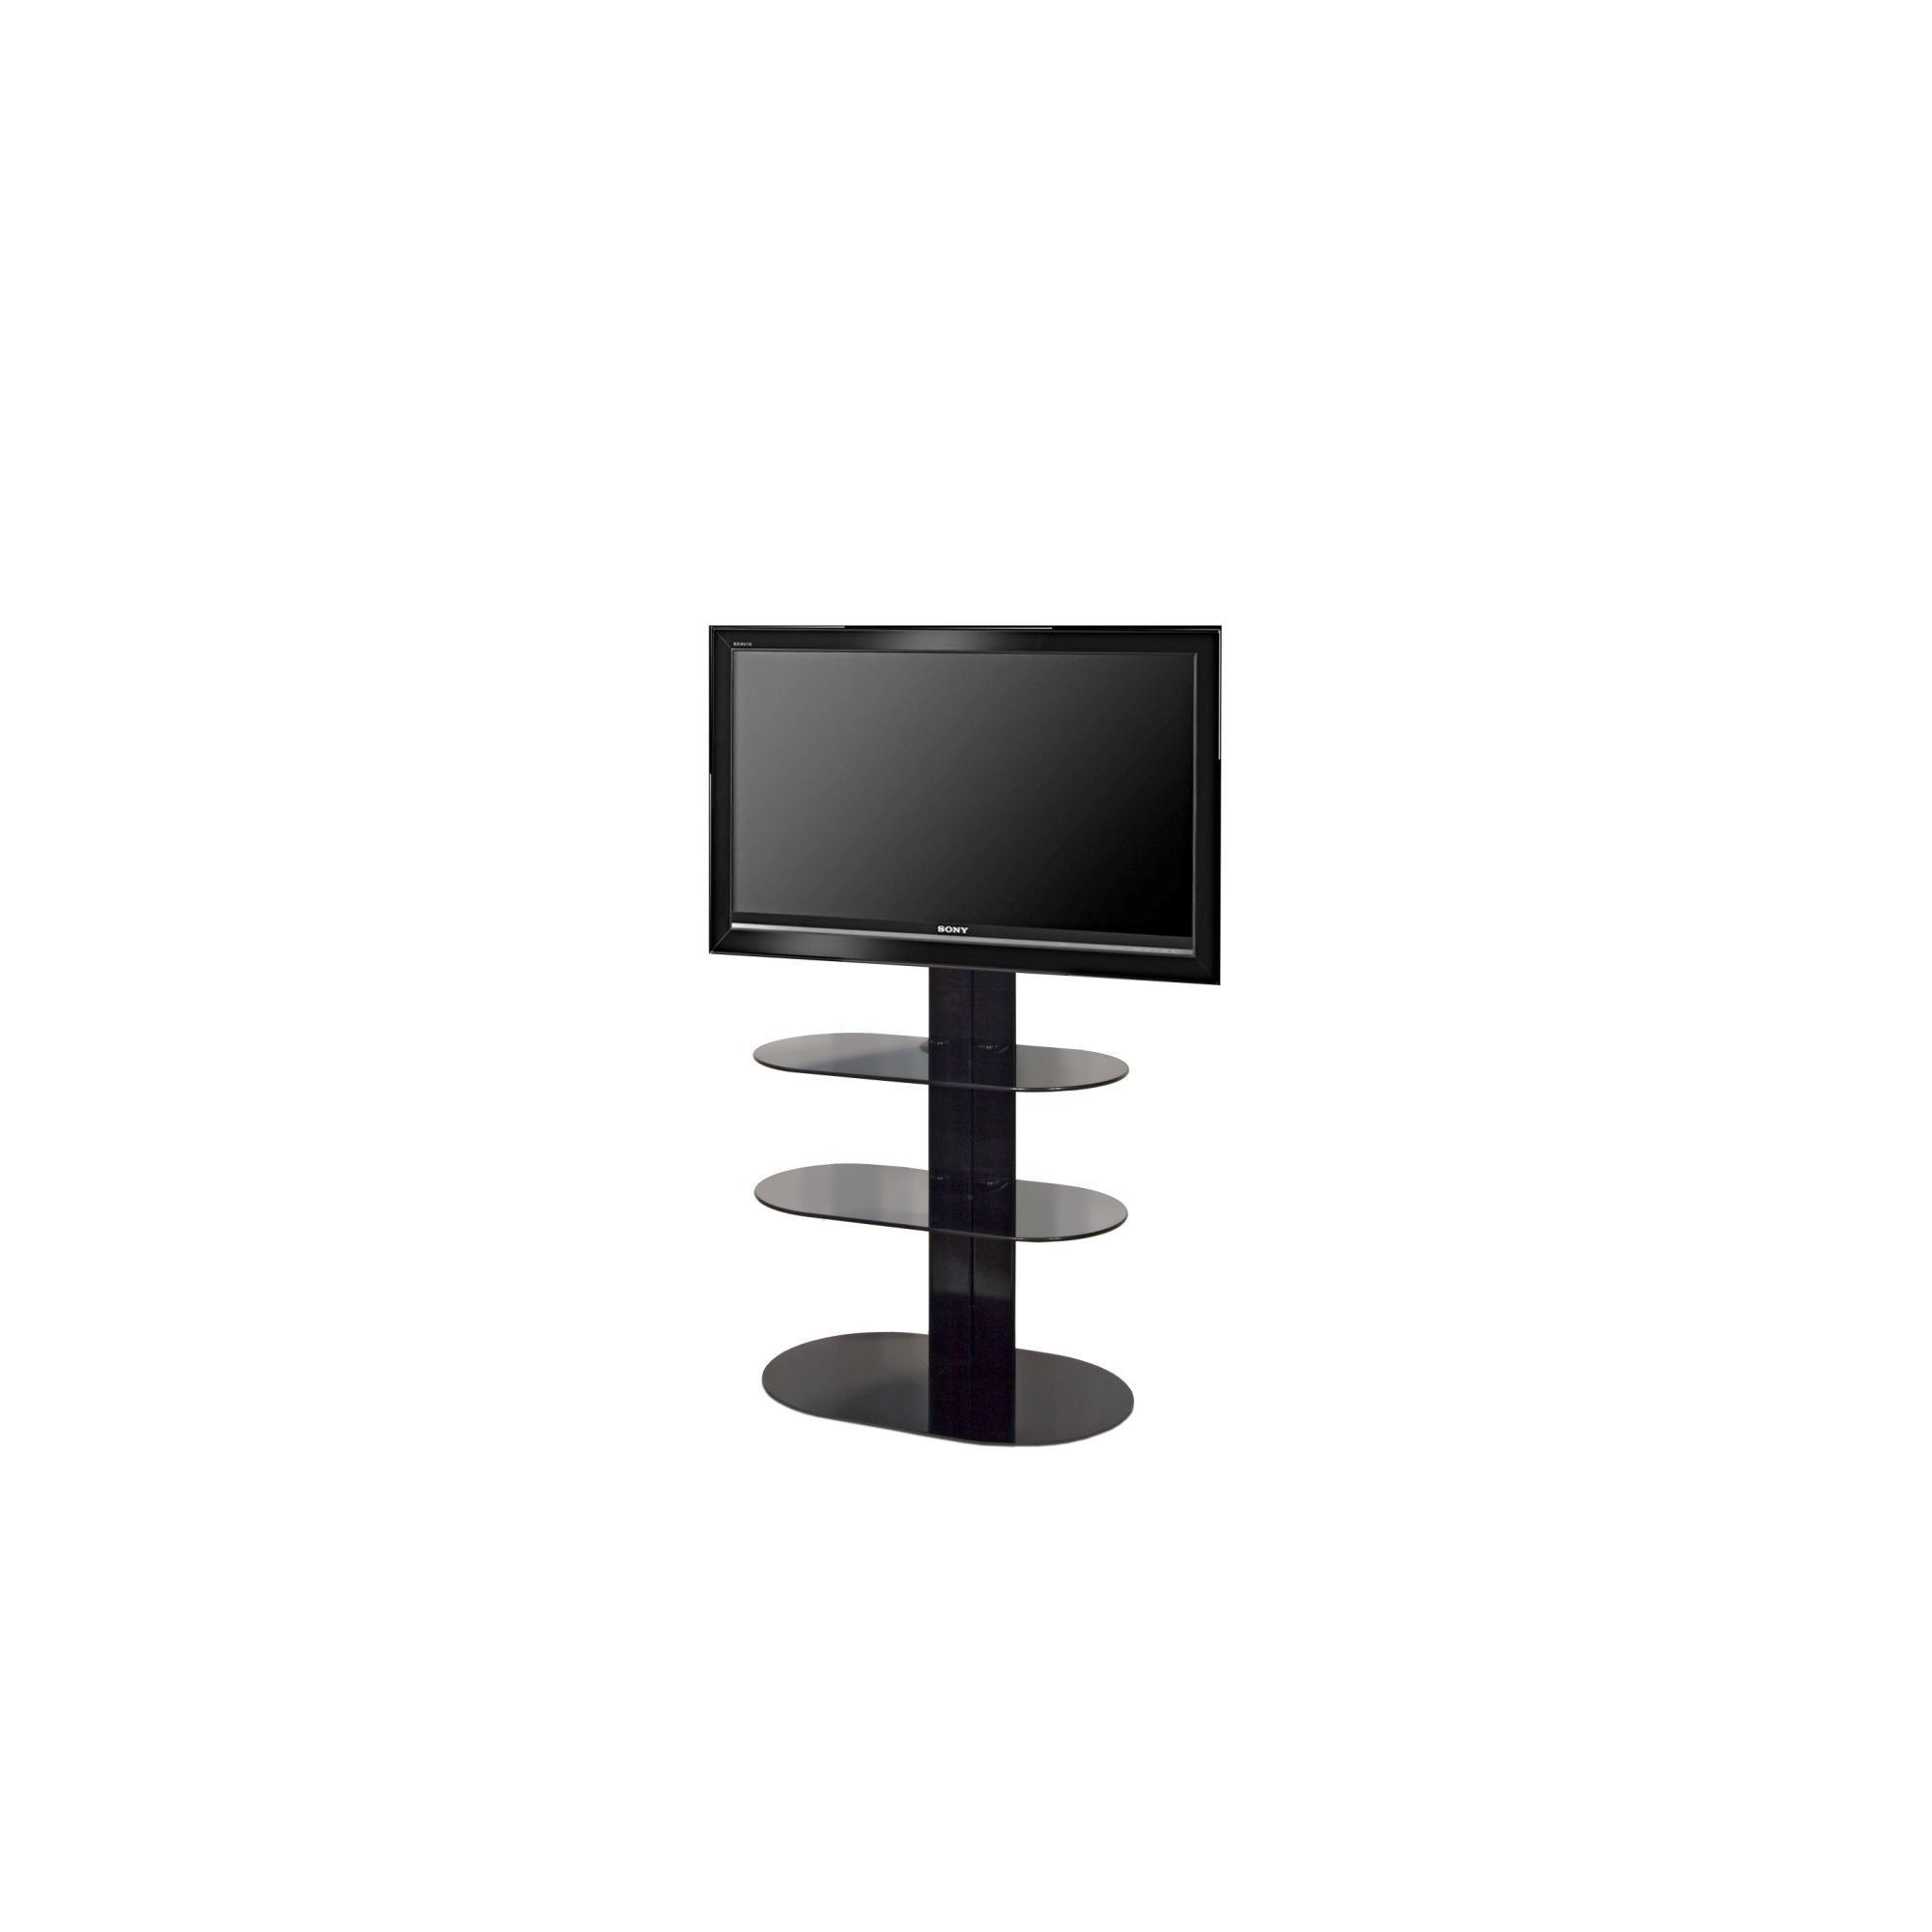 OMB Totem 1500 TV Stand - Black at Tesco Direct